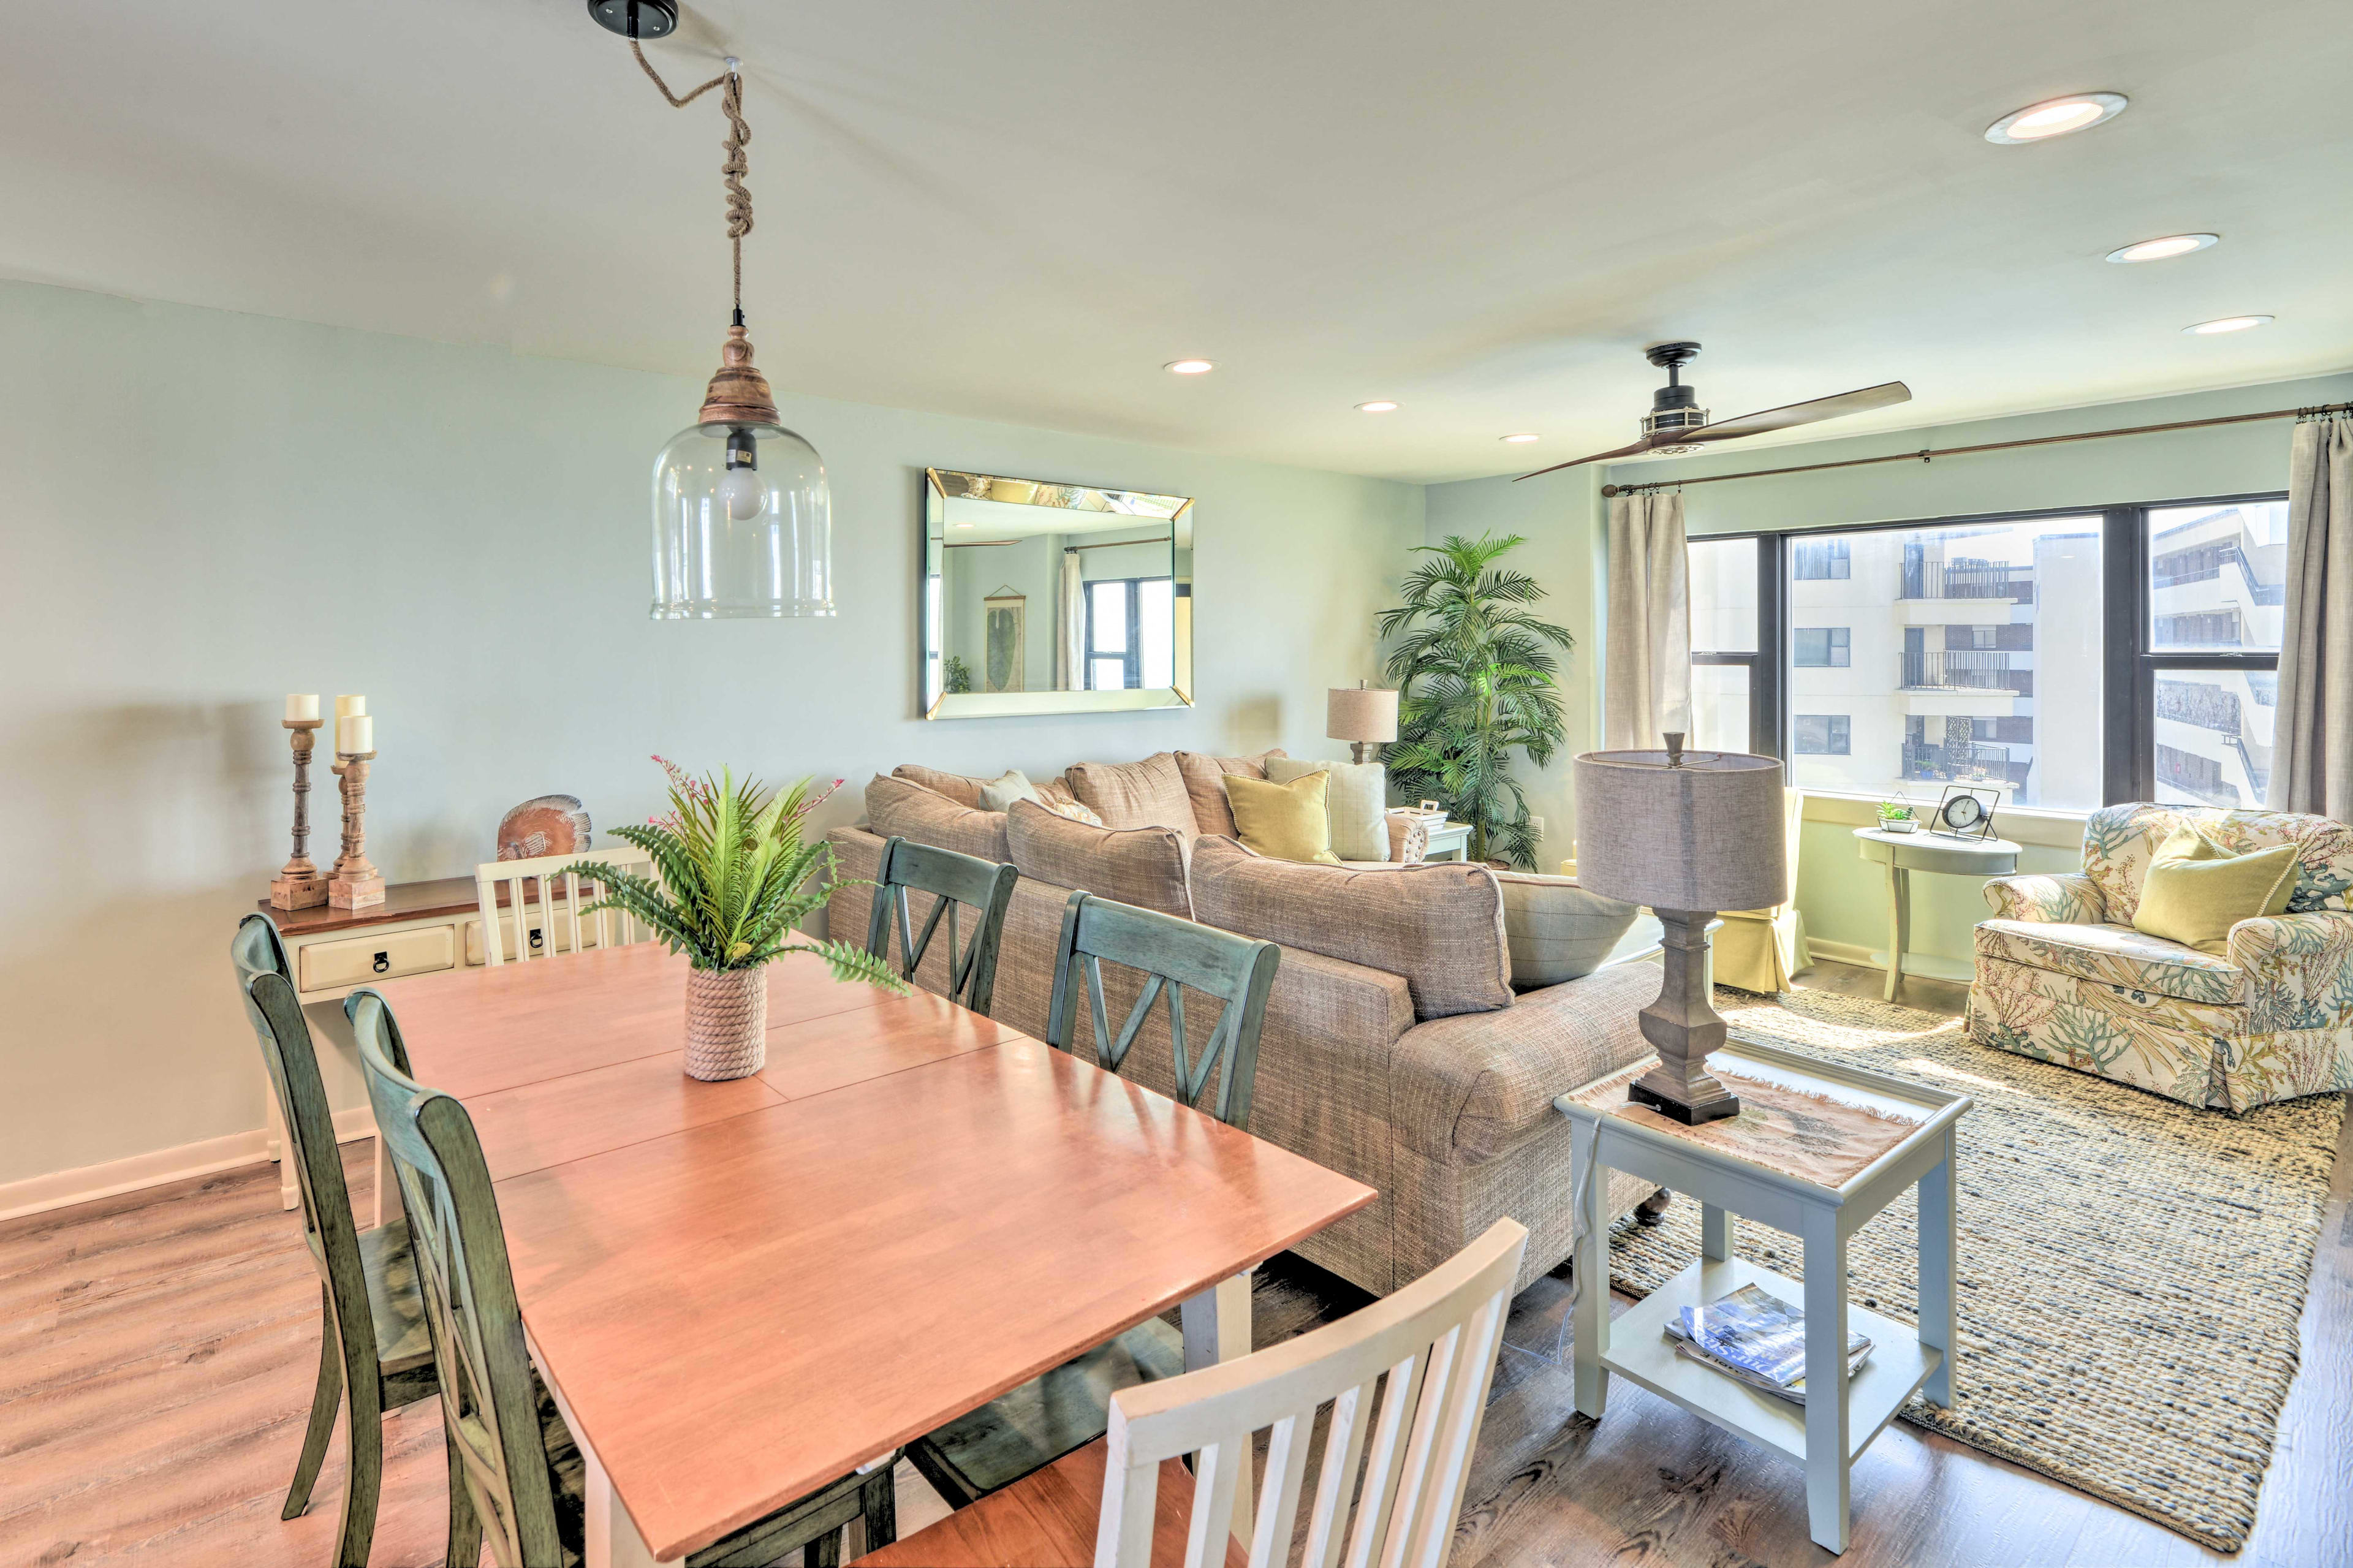 Set the large wooden dining table for a memorable family-style feast.